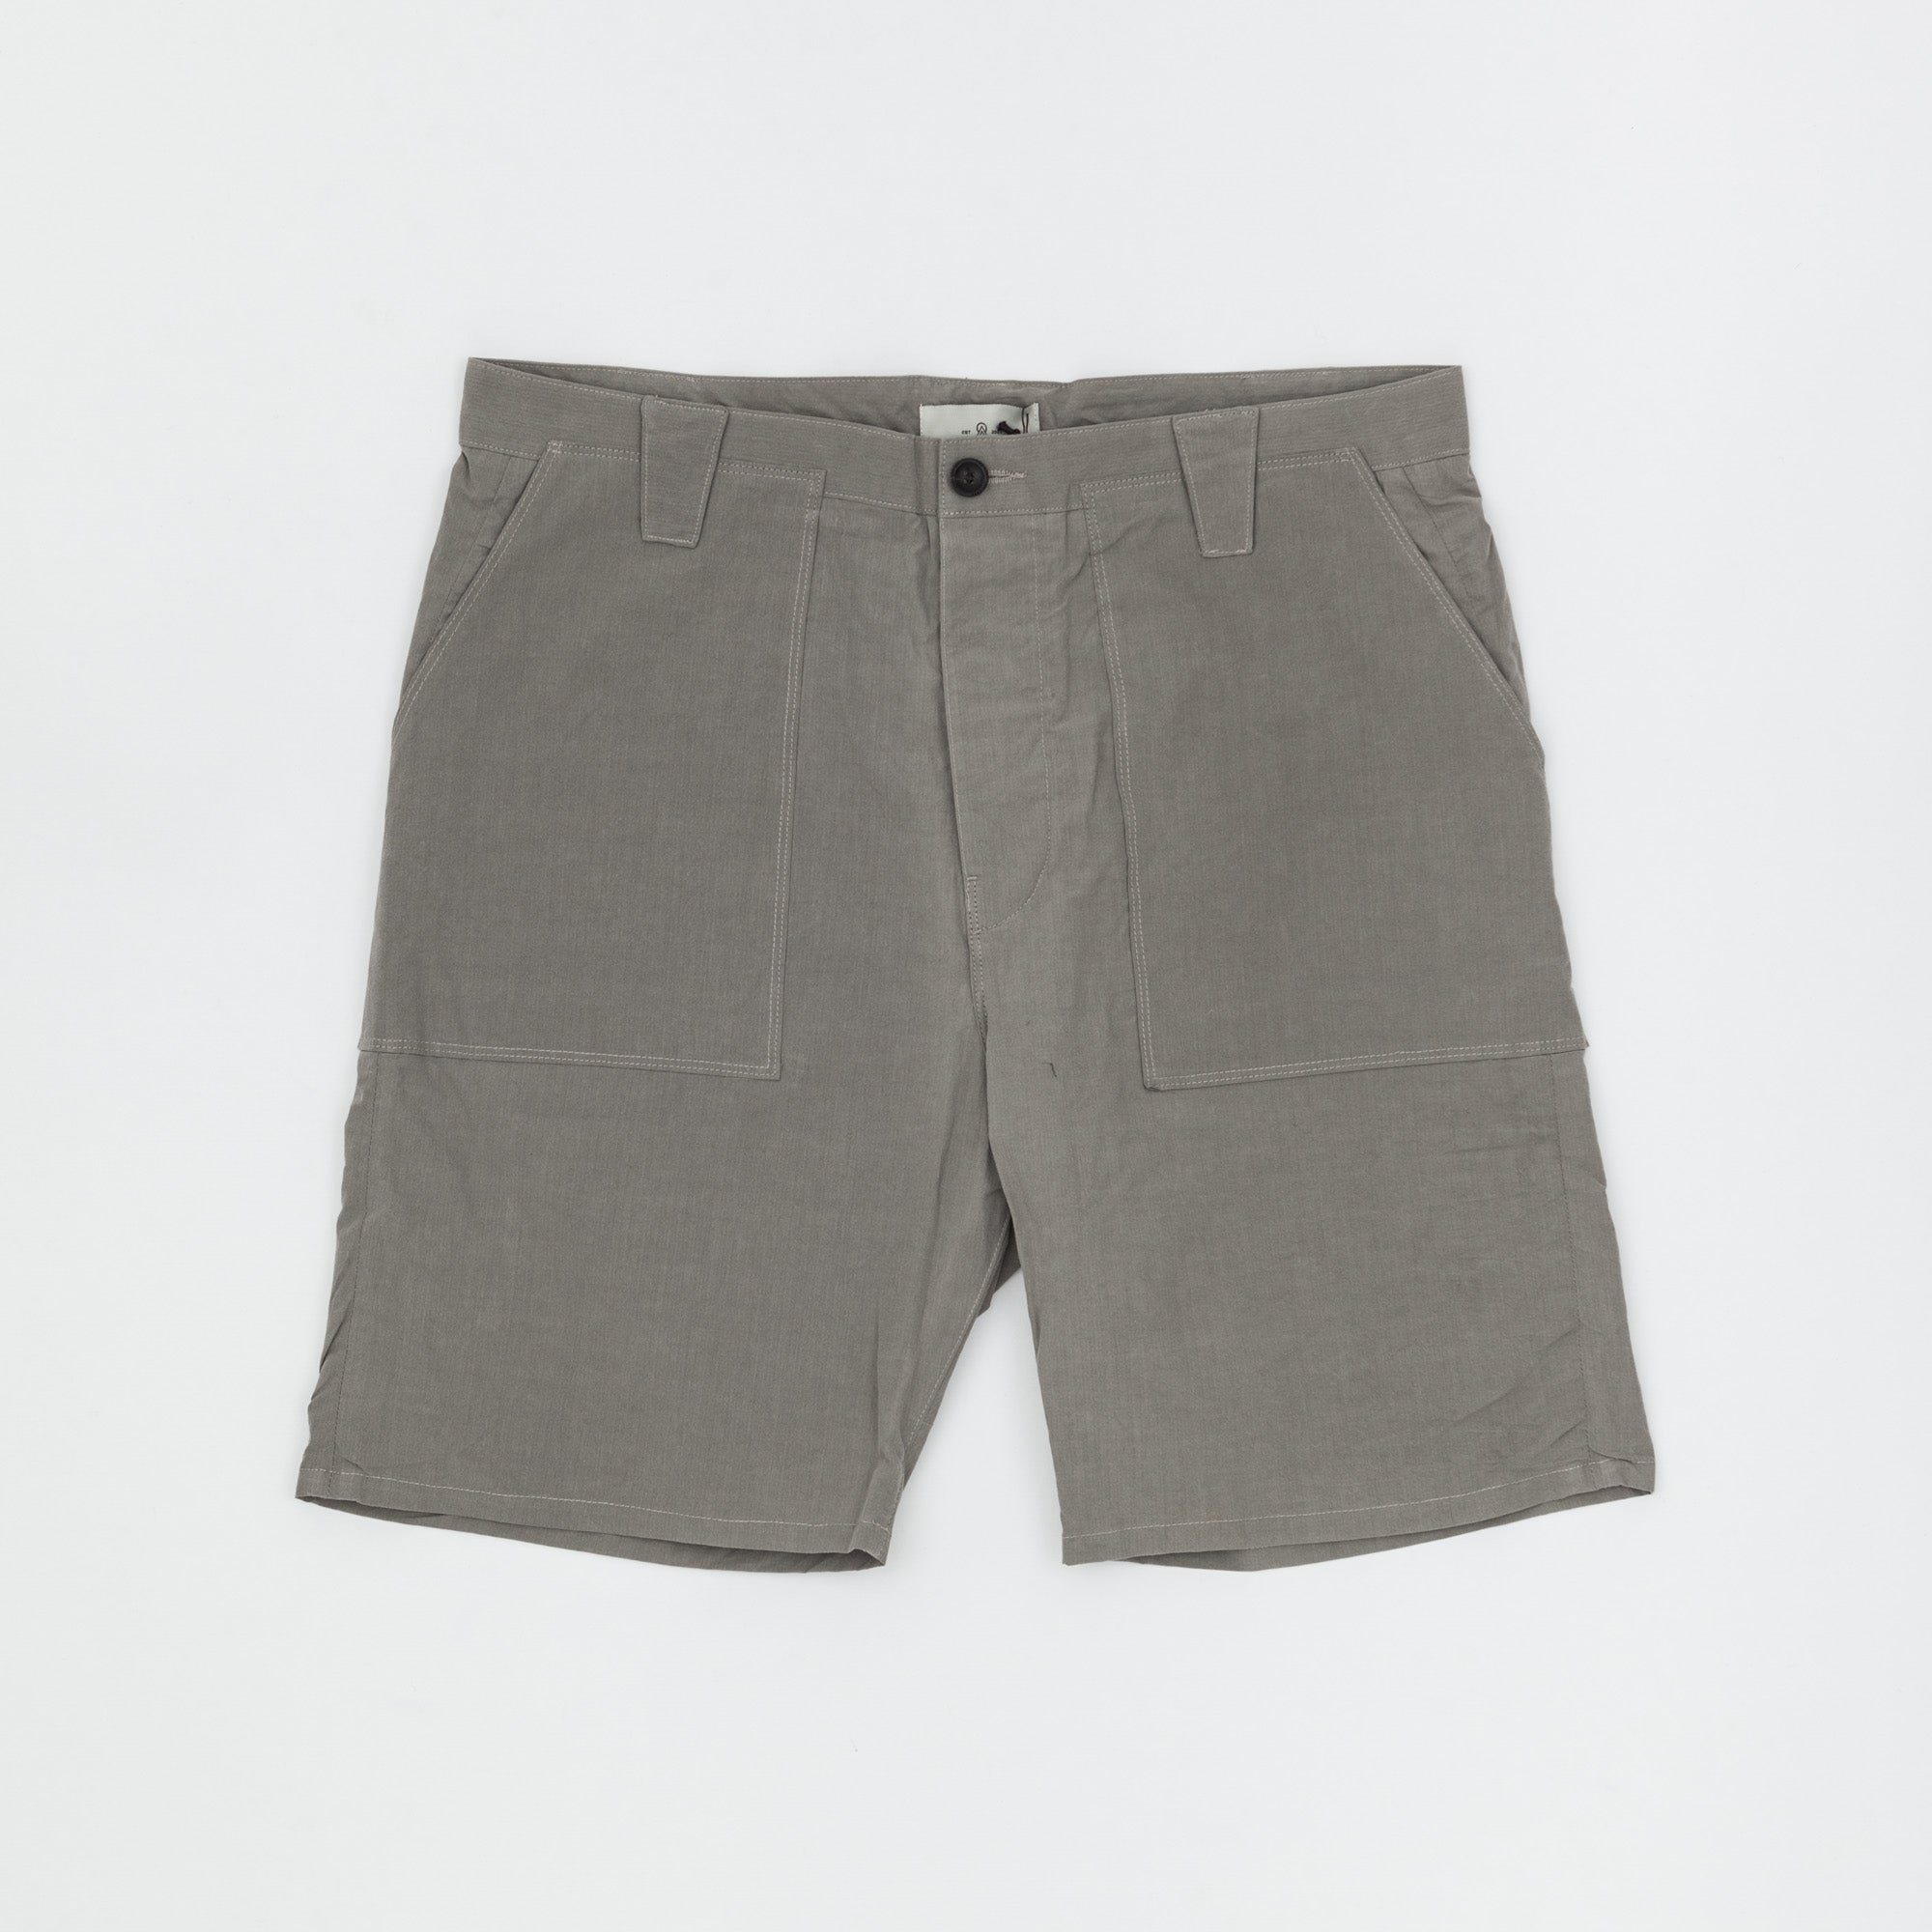 MARKHOR SHORT - MICRO RIPSTOP COTTON